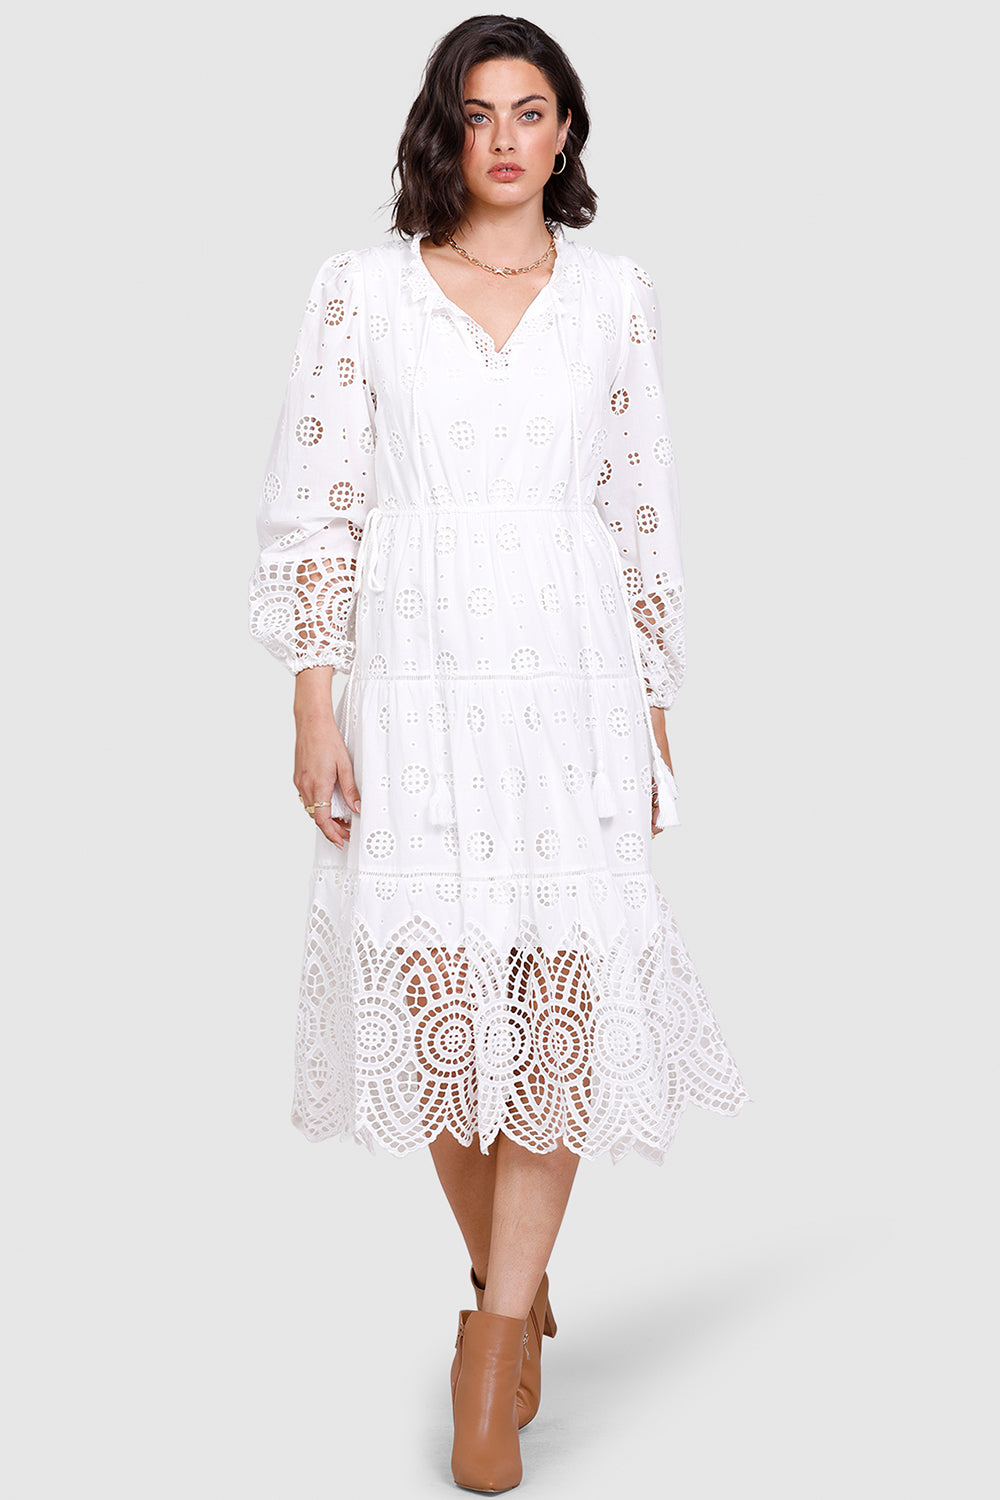 Ministry Of Style / Westbound Midi Dress / Ivory